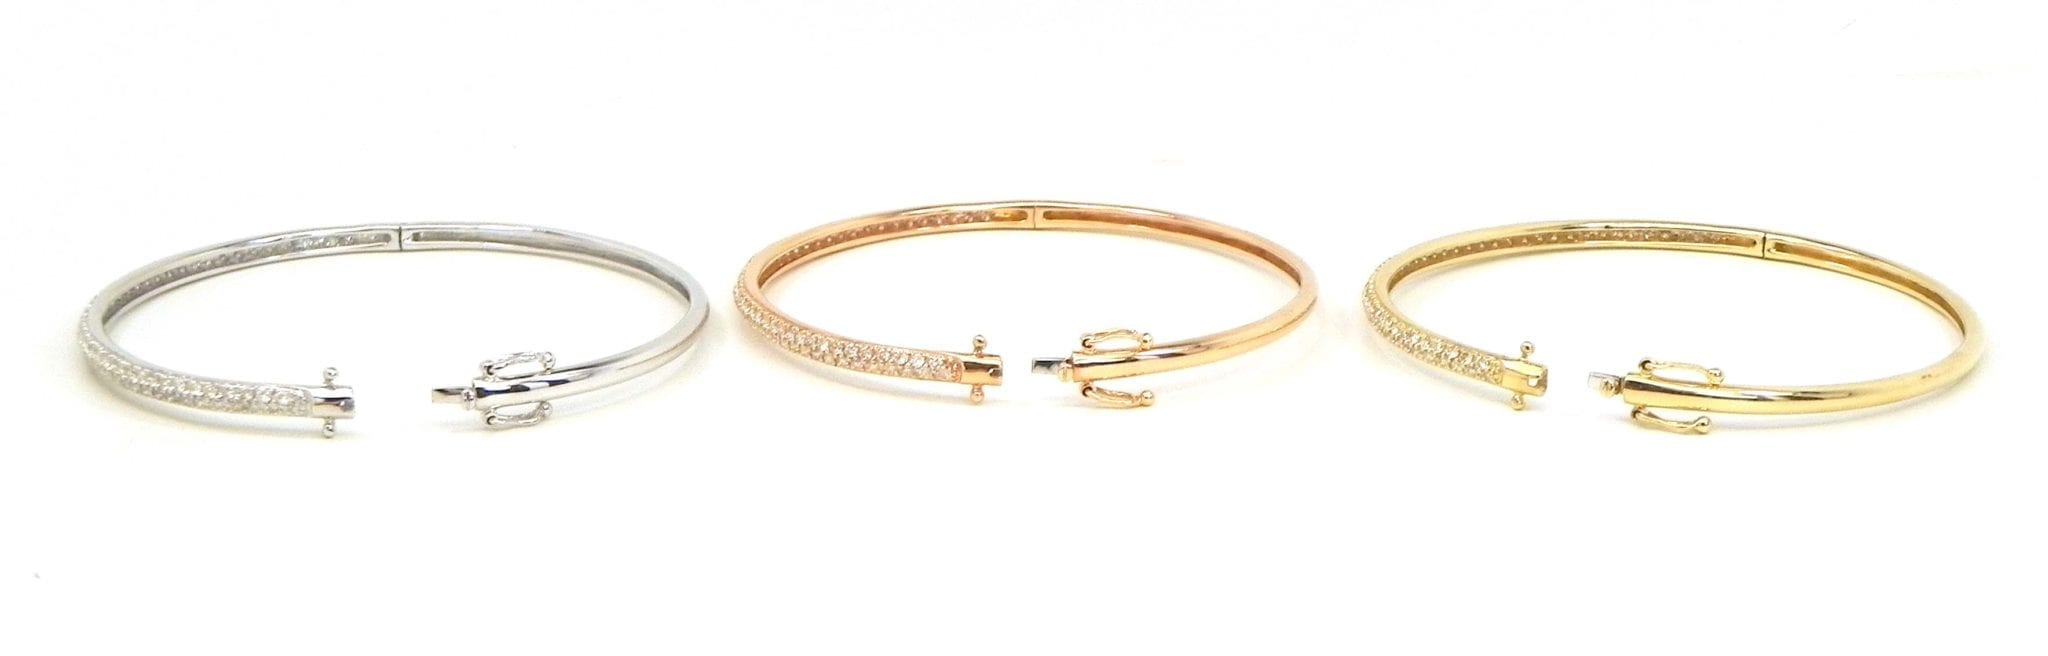 bracelet engravable lords bangle bangles eve lord gold s prayer addiction